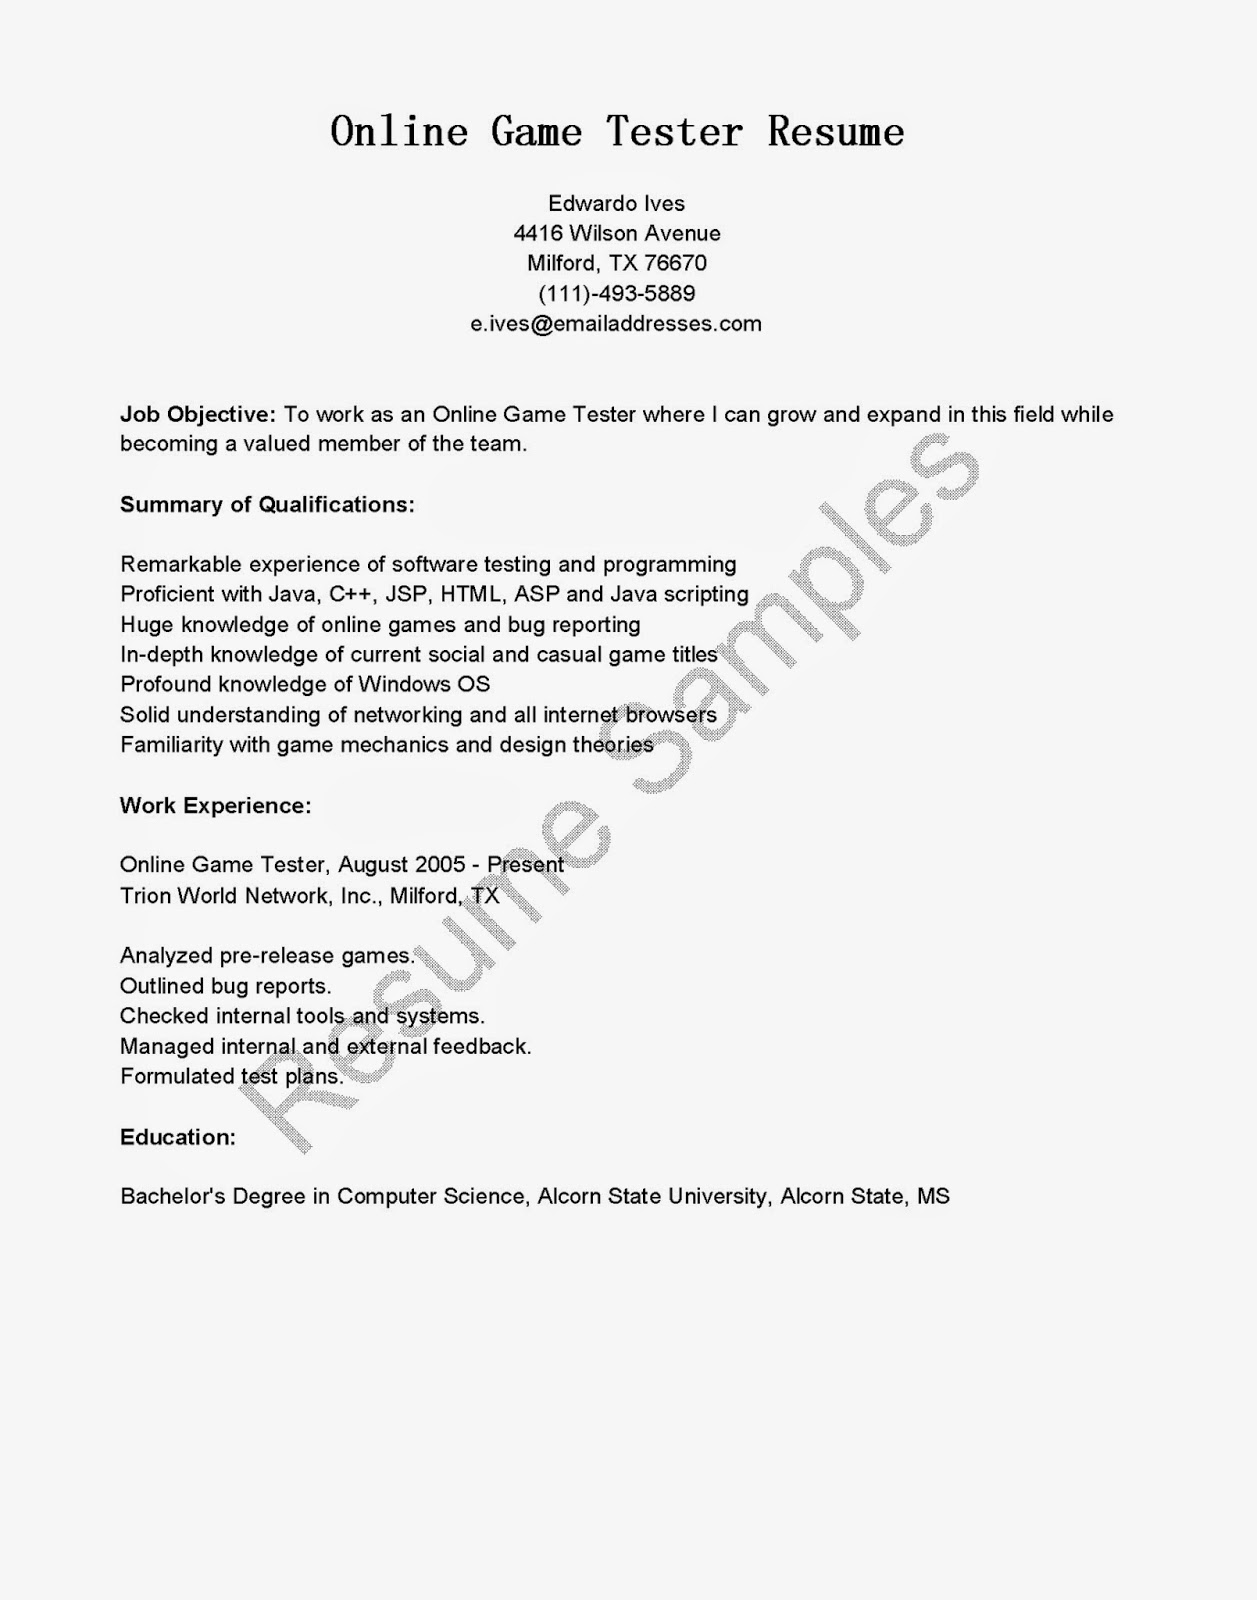 Sample cover letter for qa job - Affordable Price